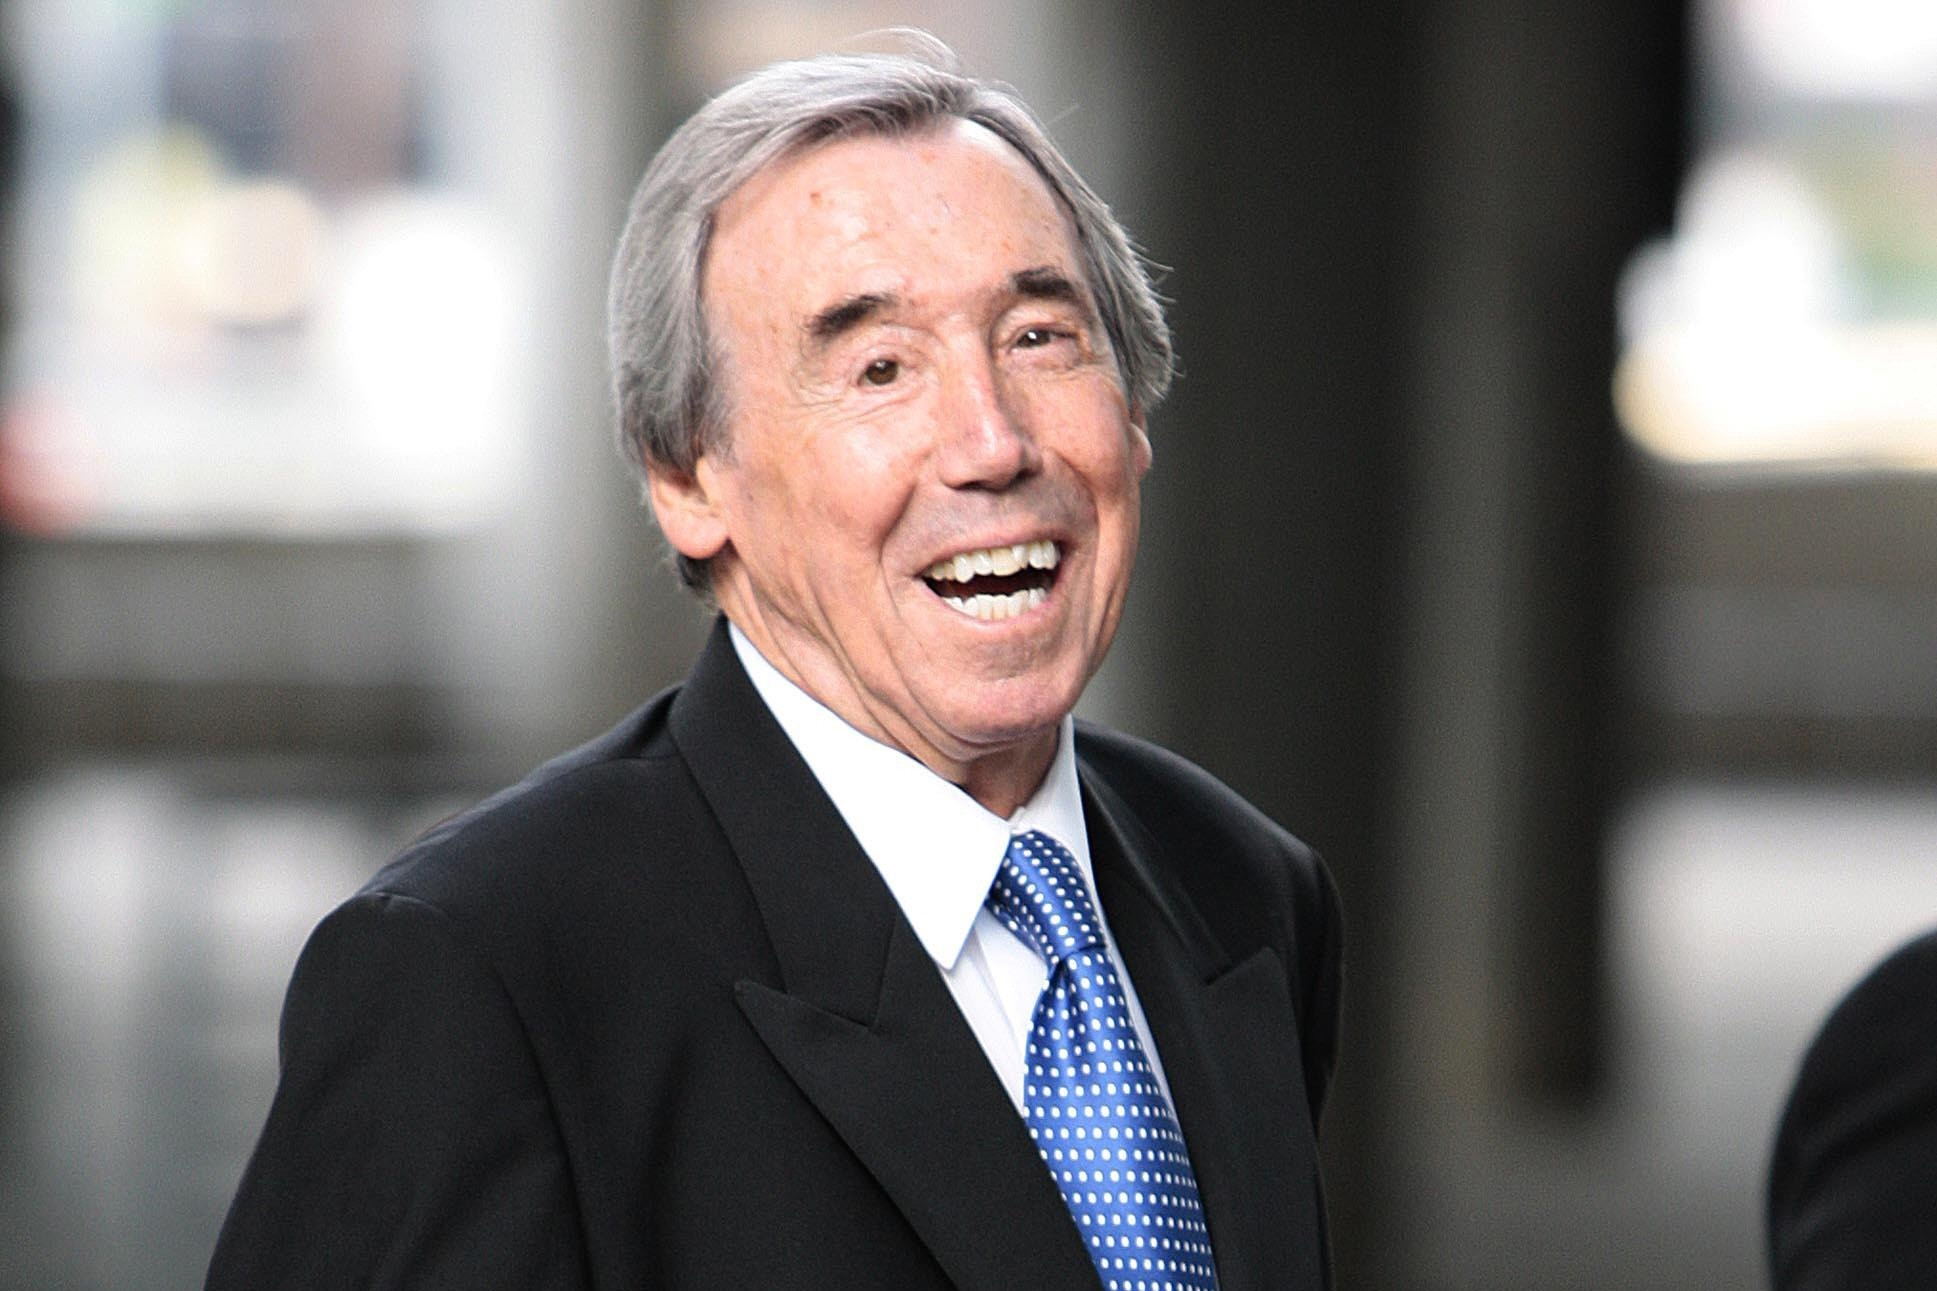 Gordon Banks offered words of goalkeeping wisdom to an eight-year-old boy